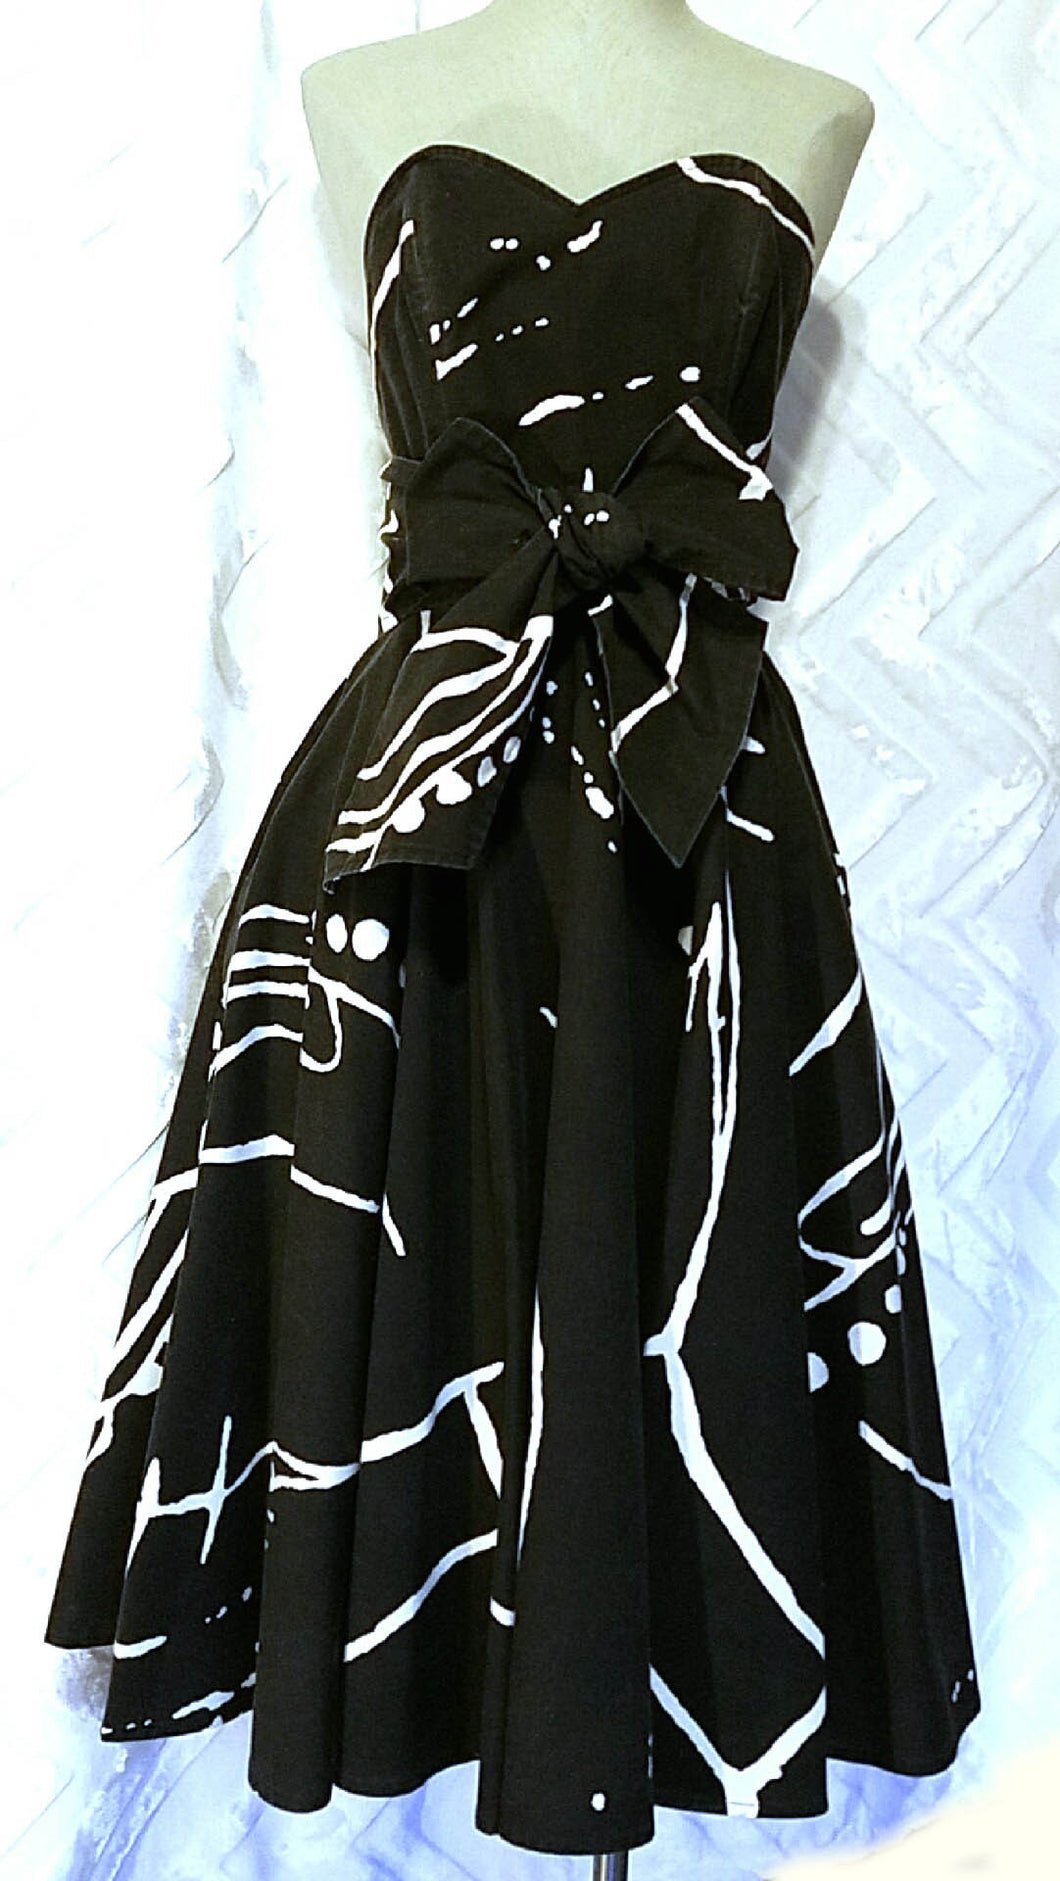 NEO80 PARTY Circle Wrap Dress in Black & White Cotton Vintage Print - Neo80Now